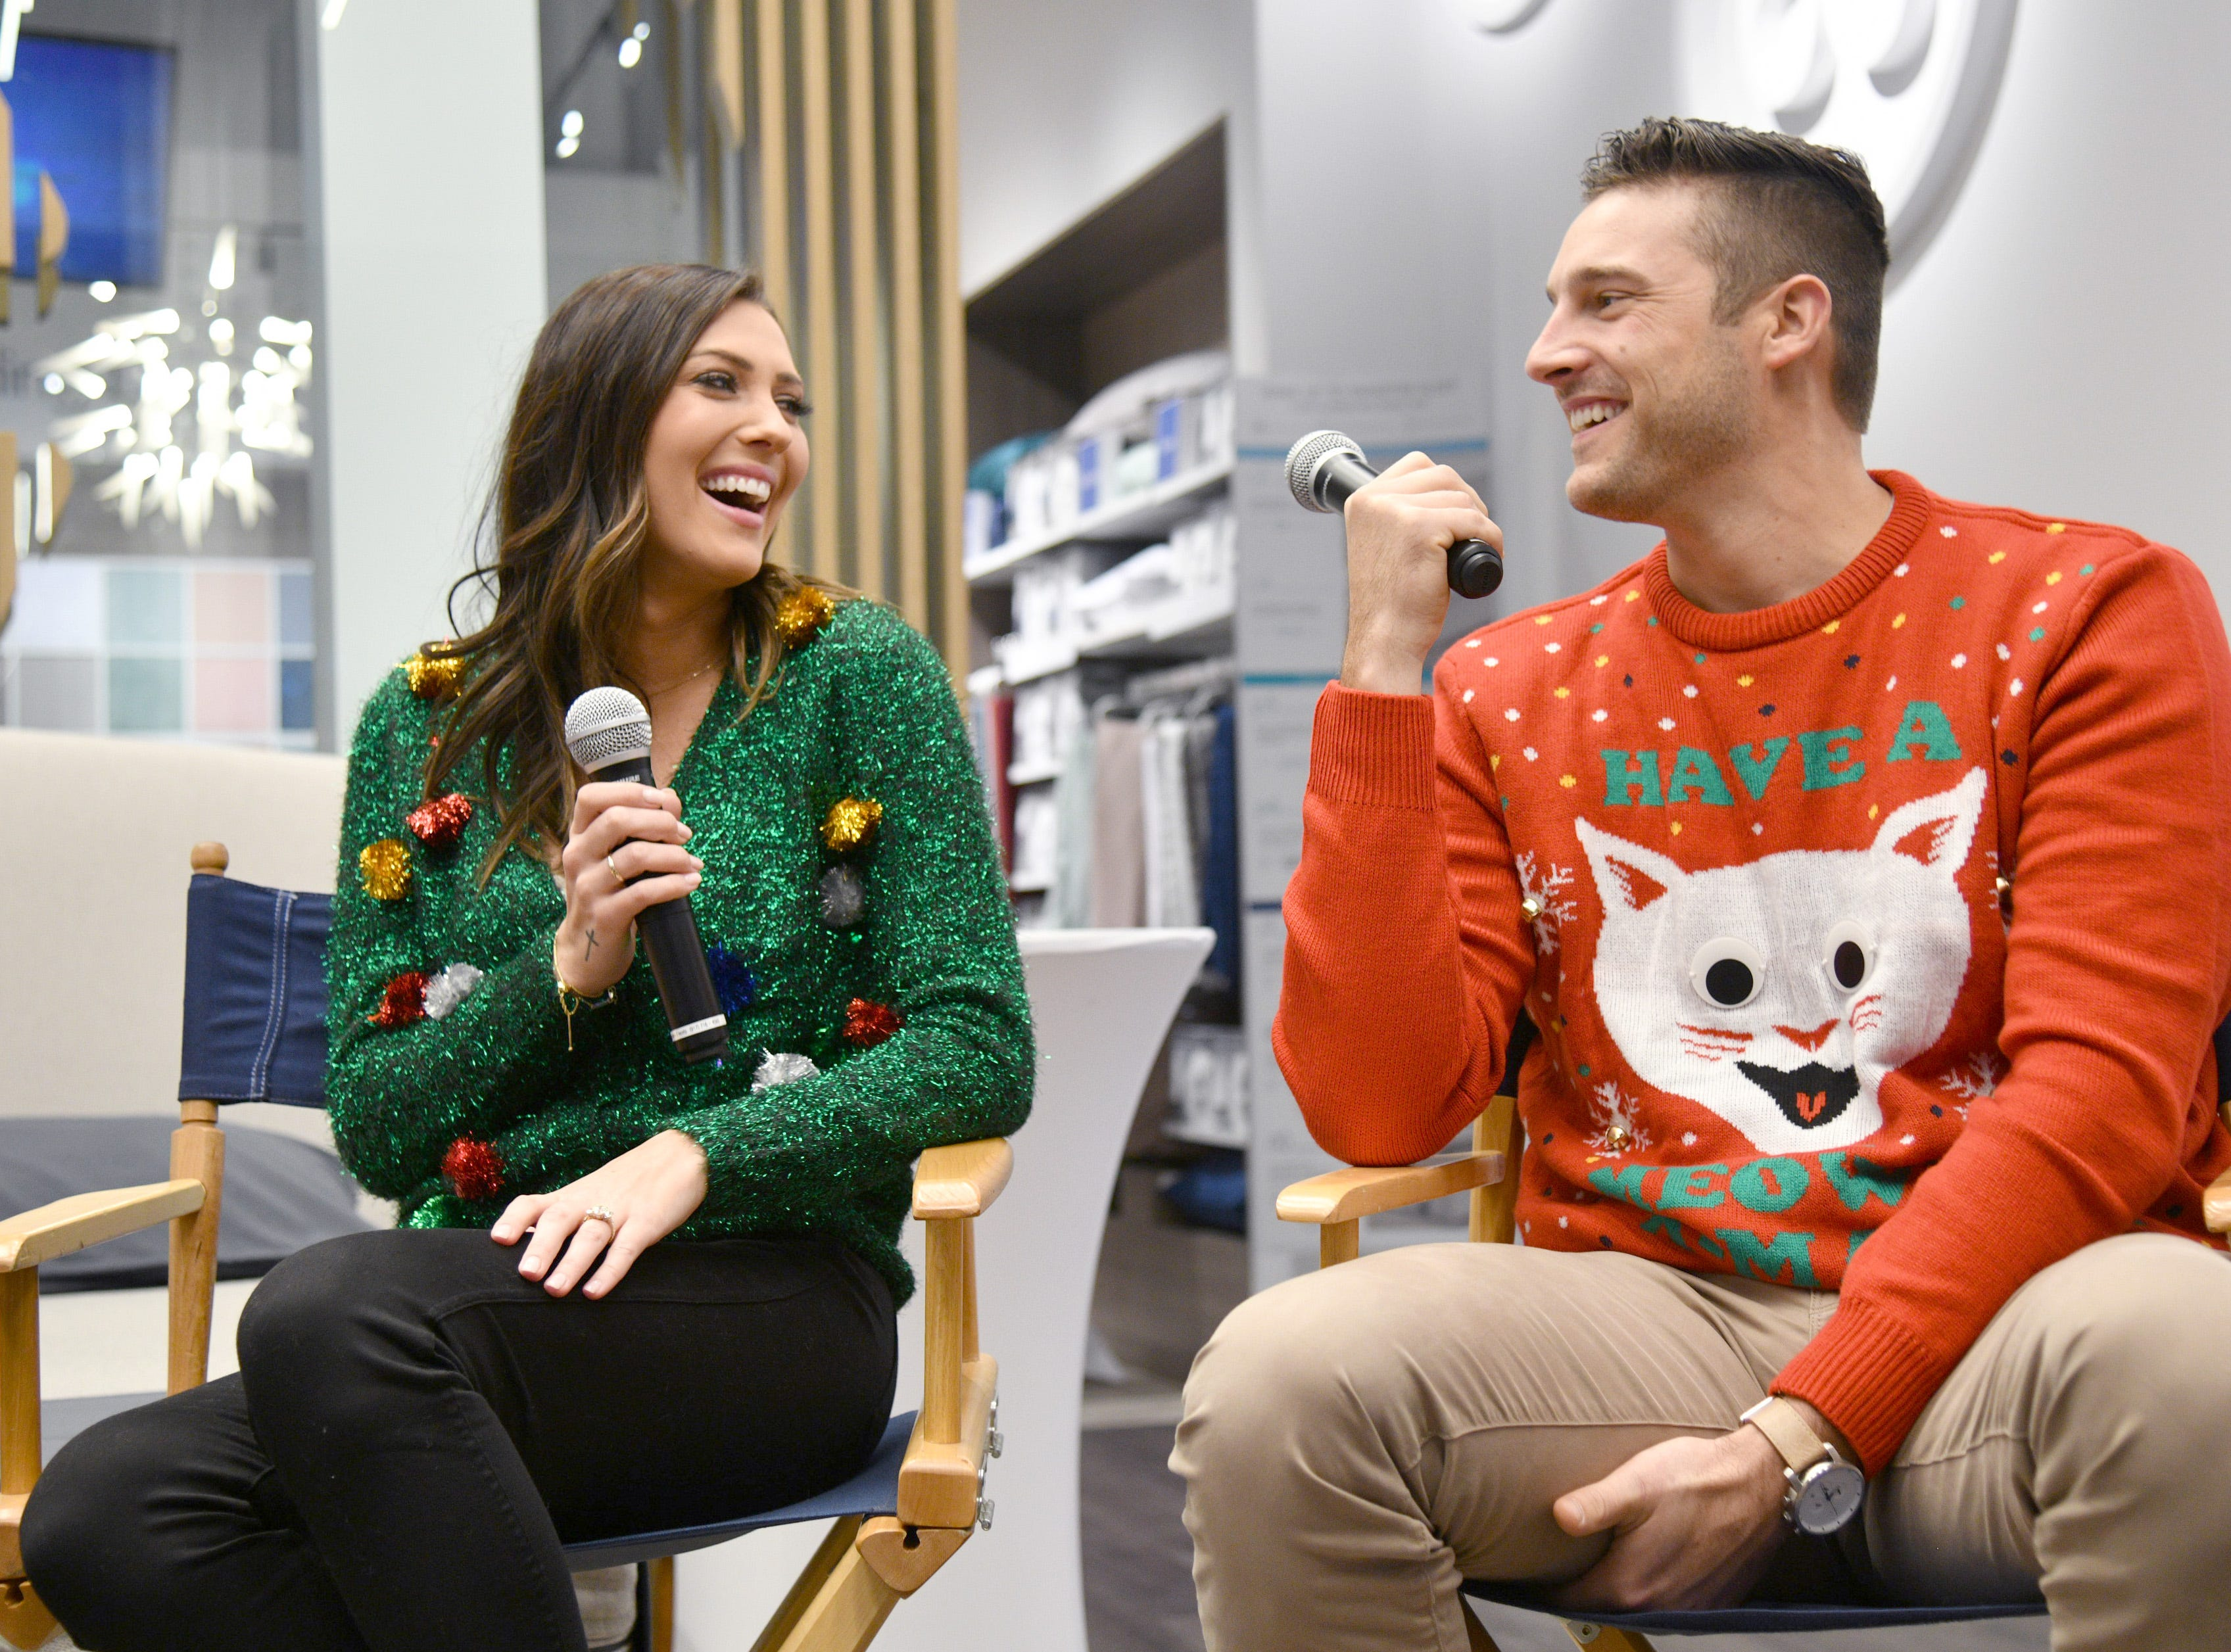 NEW YORK, NY - DECEMBER 14:  Becca Kufrin and Garrett Yrigoyen speak as Sean and Catherine Lowe, Becca Kufrin and Garrett Yrigoyen celebrate Sleep Number with a night 'Under the Mistletoe' at Sleep Number on December 14, 2018 in New York City.  (Photo by Bryan Bedder/Getty Images for Sleep Number) ORG XMIT: 775269177 ORIG FILE ID: 1073351404